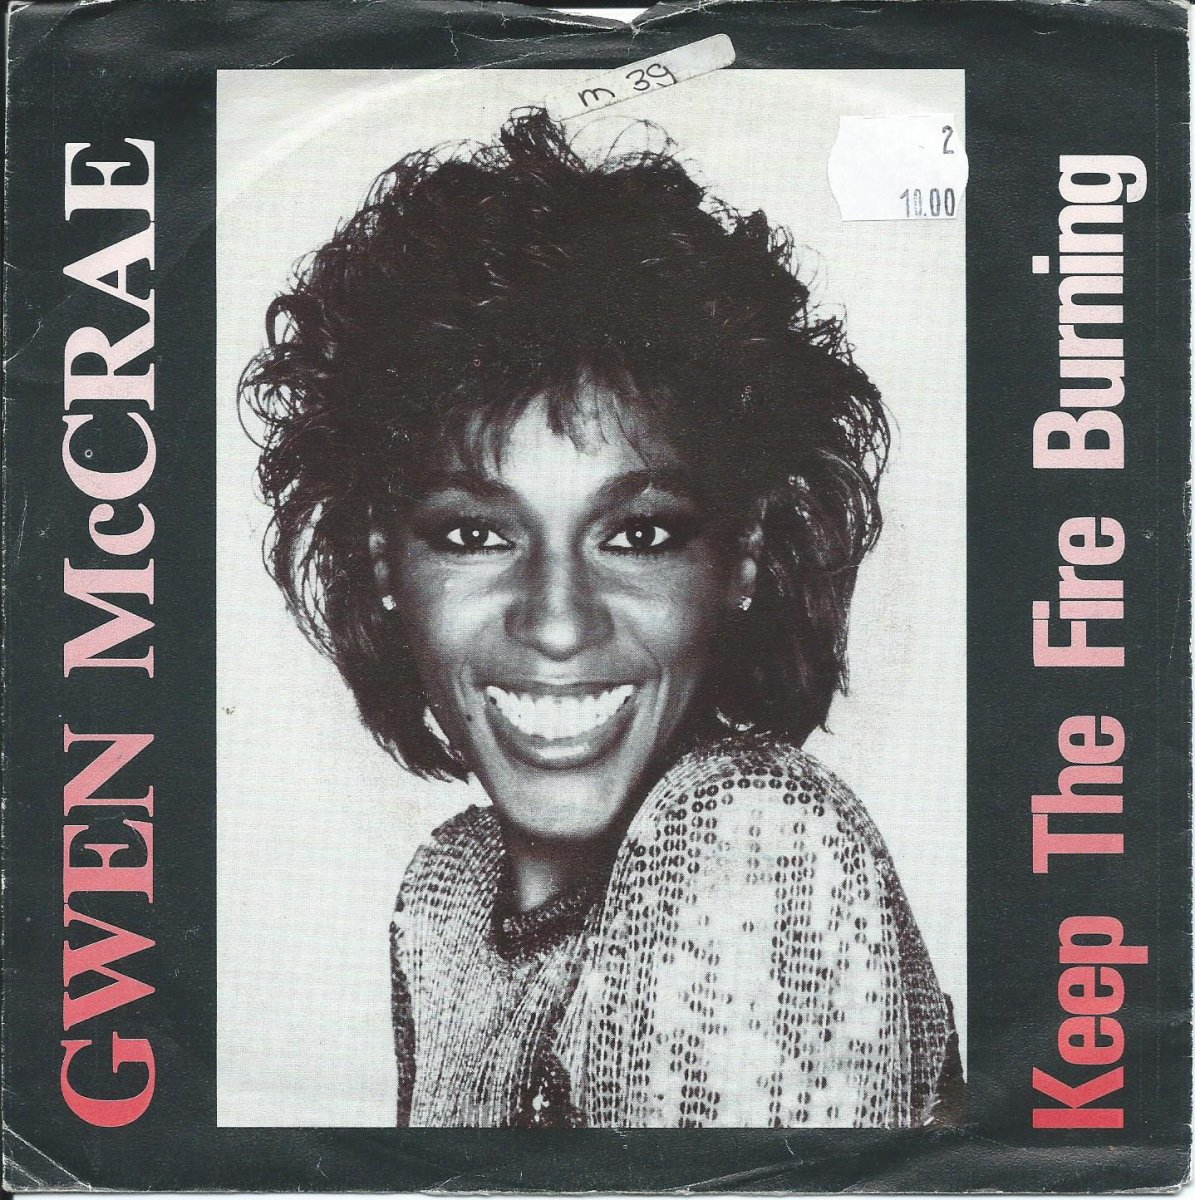 GWEN MCCRAE / KEEP THE FIRE BURNING / HANG IN (7